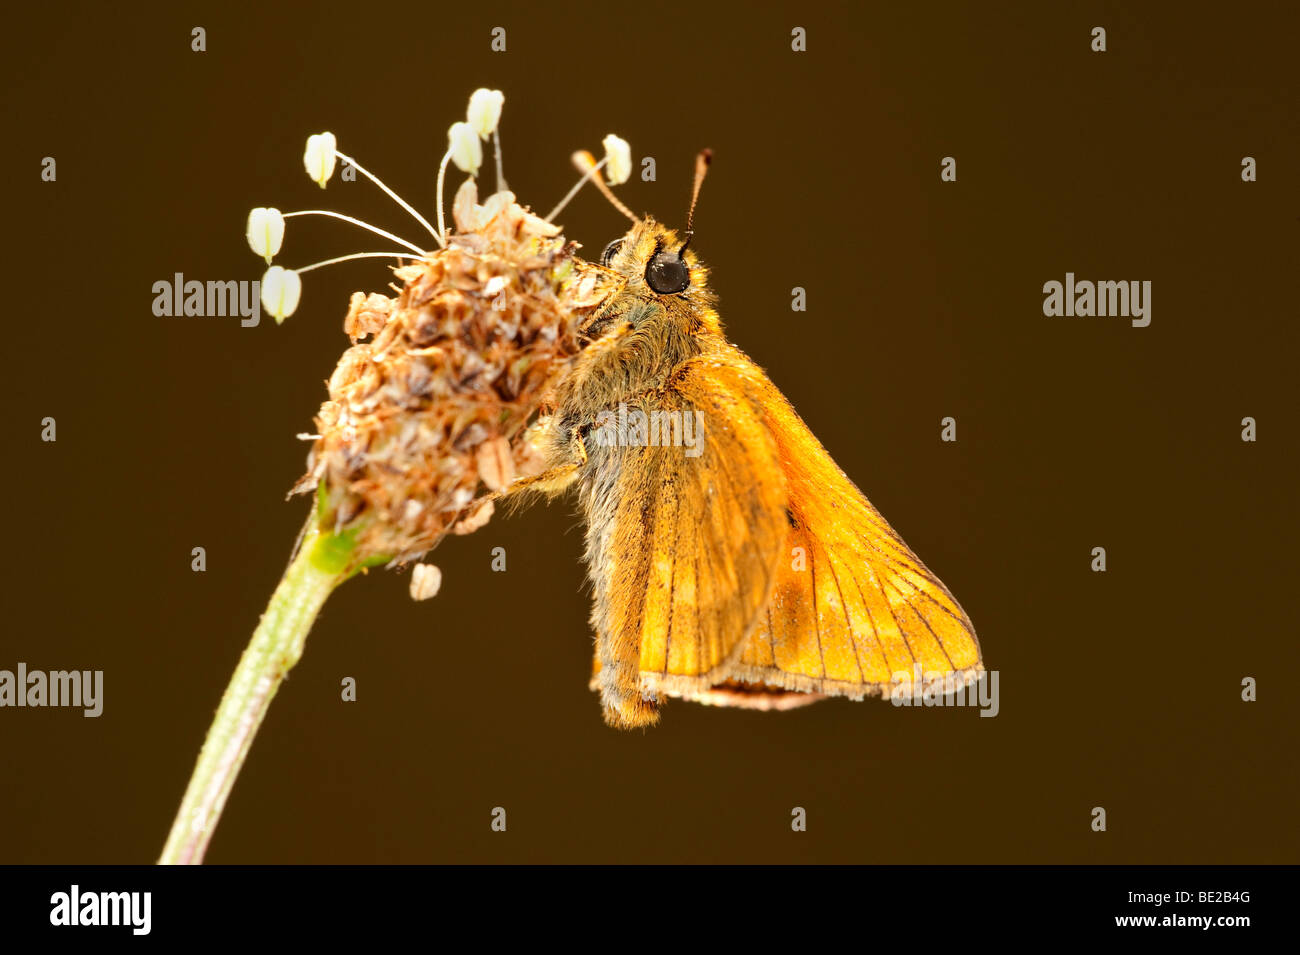 Small Skipper Butterfly Thymelicus sylvestris resting on plantin flower backlight - Stock Image